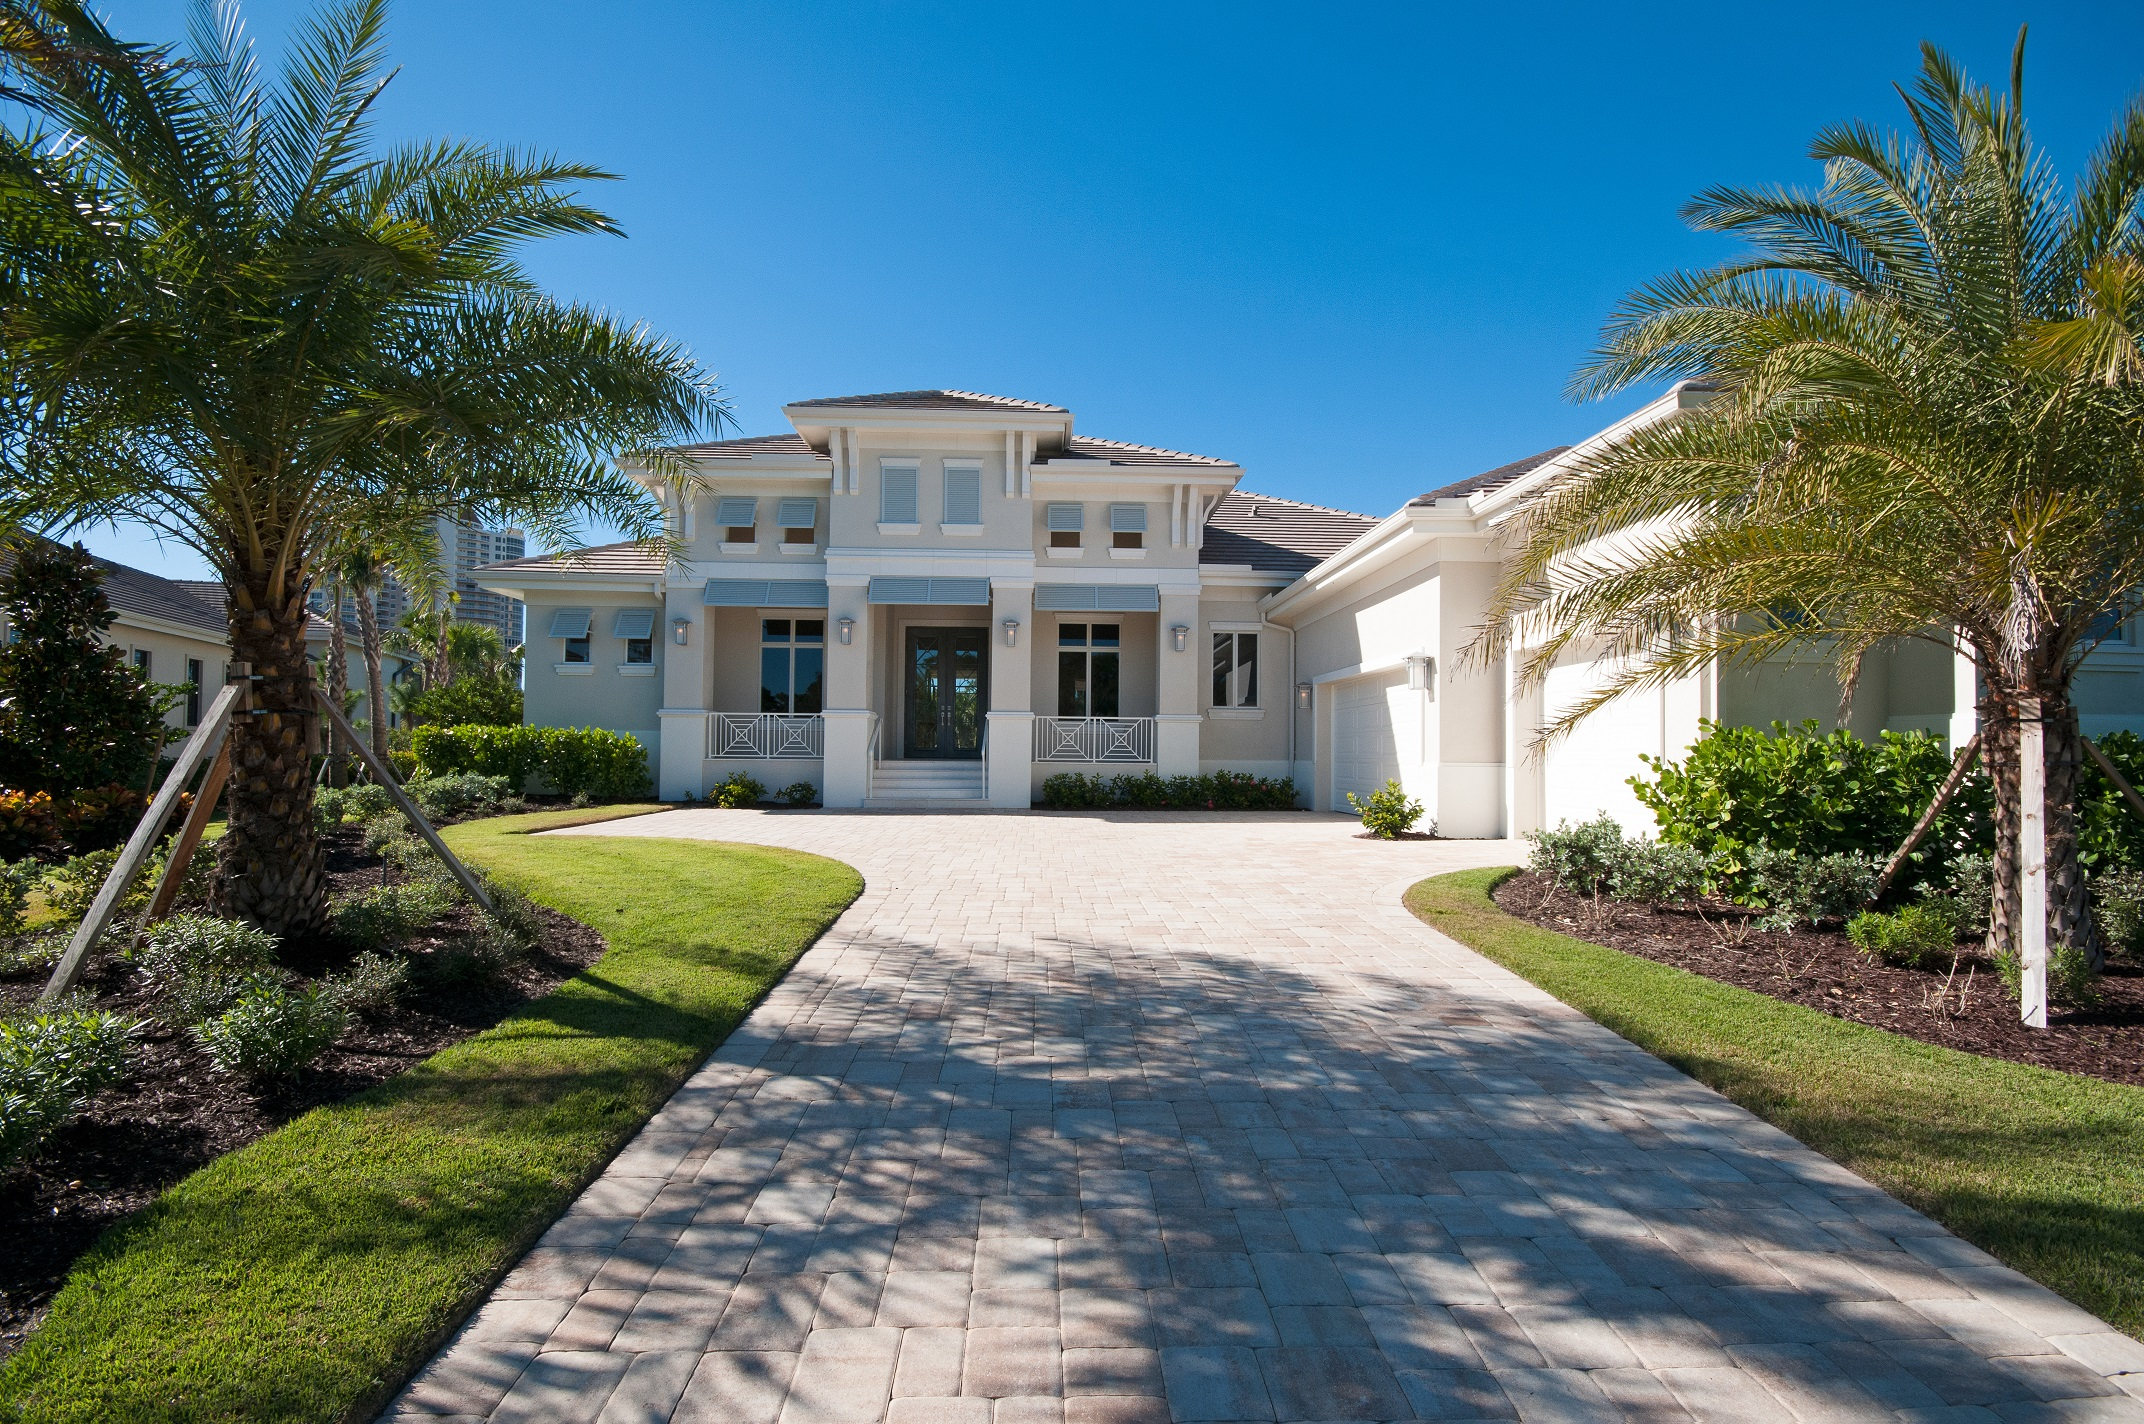 Exterior Bonita Bay Home For Sale